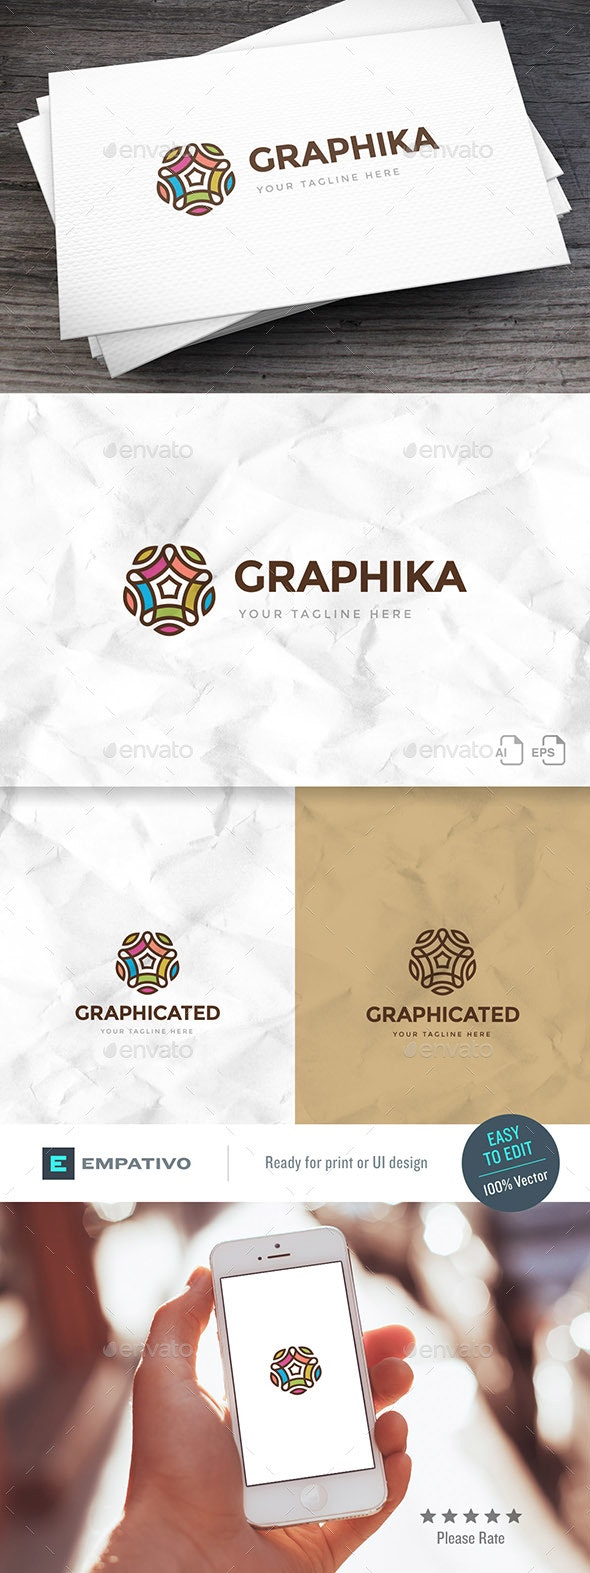 Graphicated Logo Template - Abstract Logo Templates